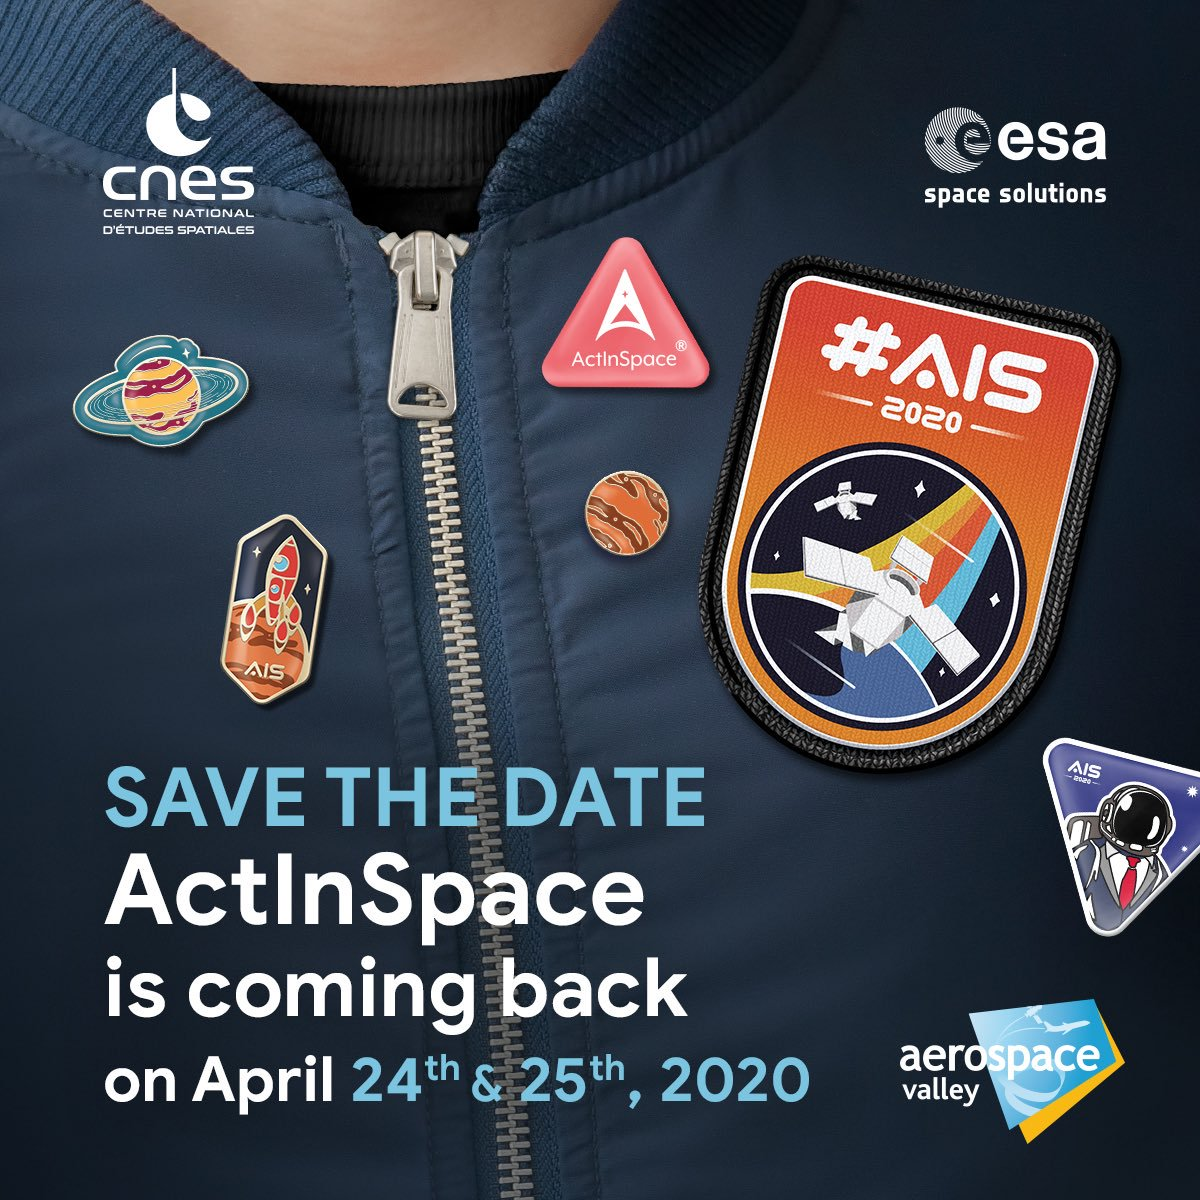 picture for ActInSpace® 2020 kicks off at Paris Air Show